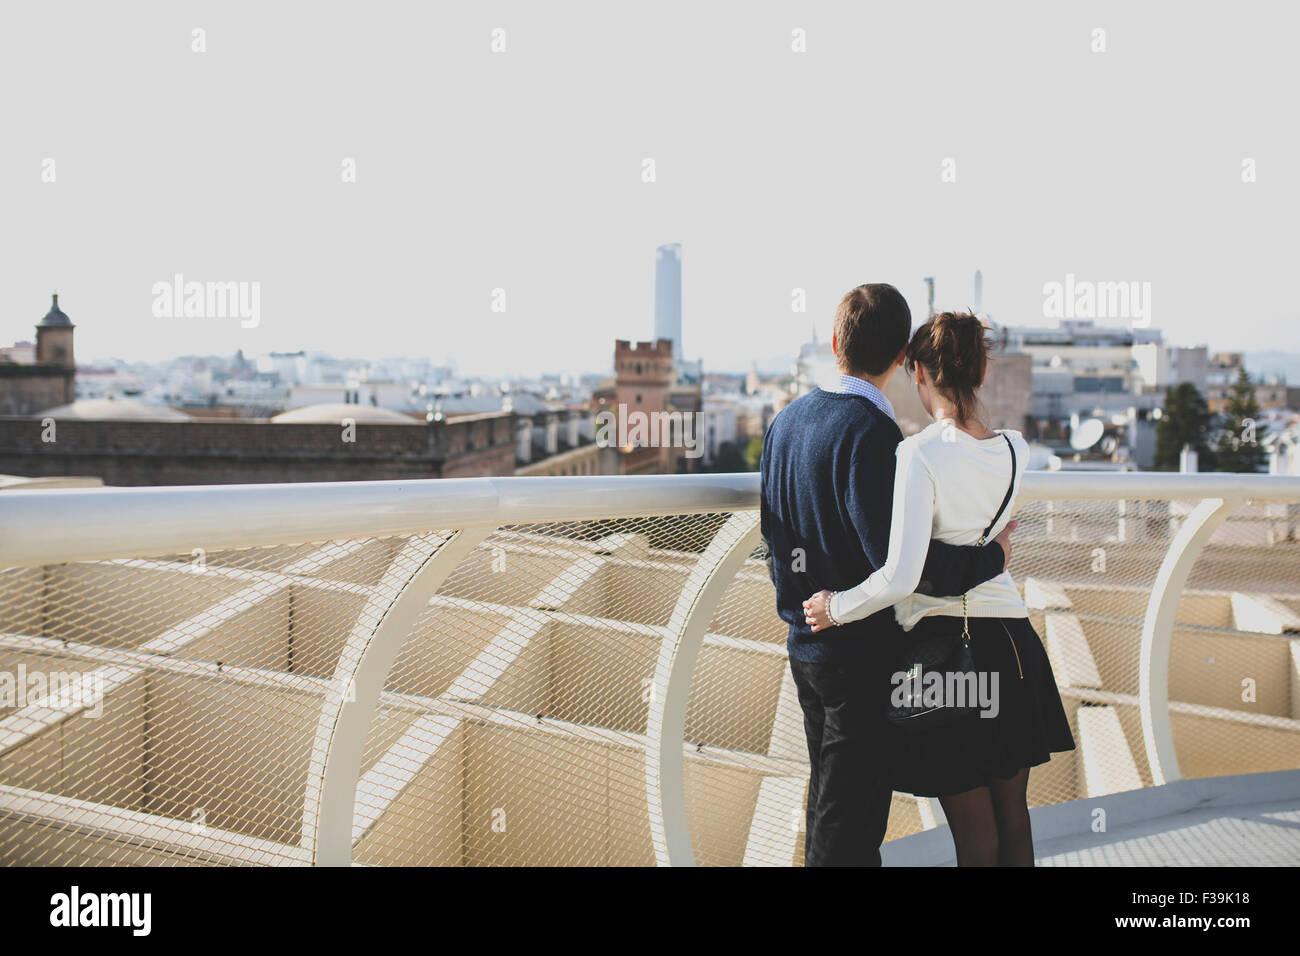 Portrait of a young couple looking at city views, Seville, Andalusia, Spain - Stock Image